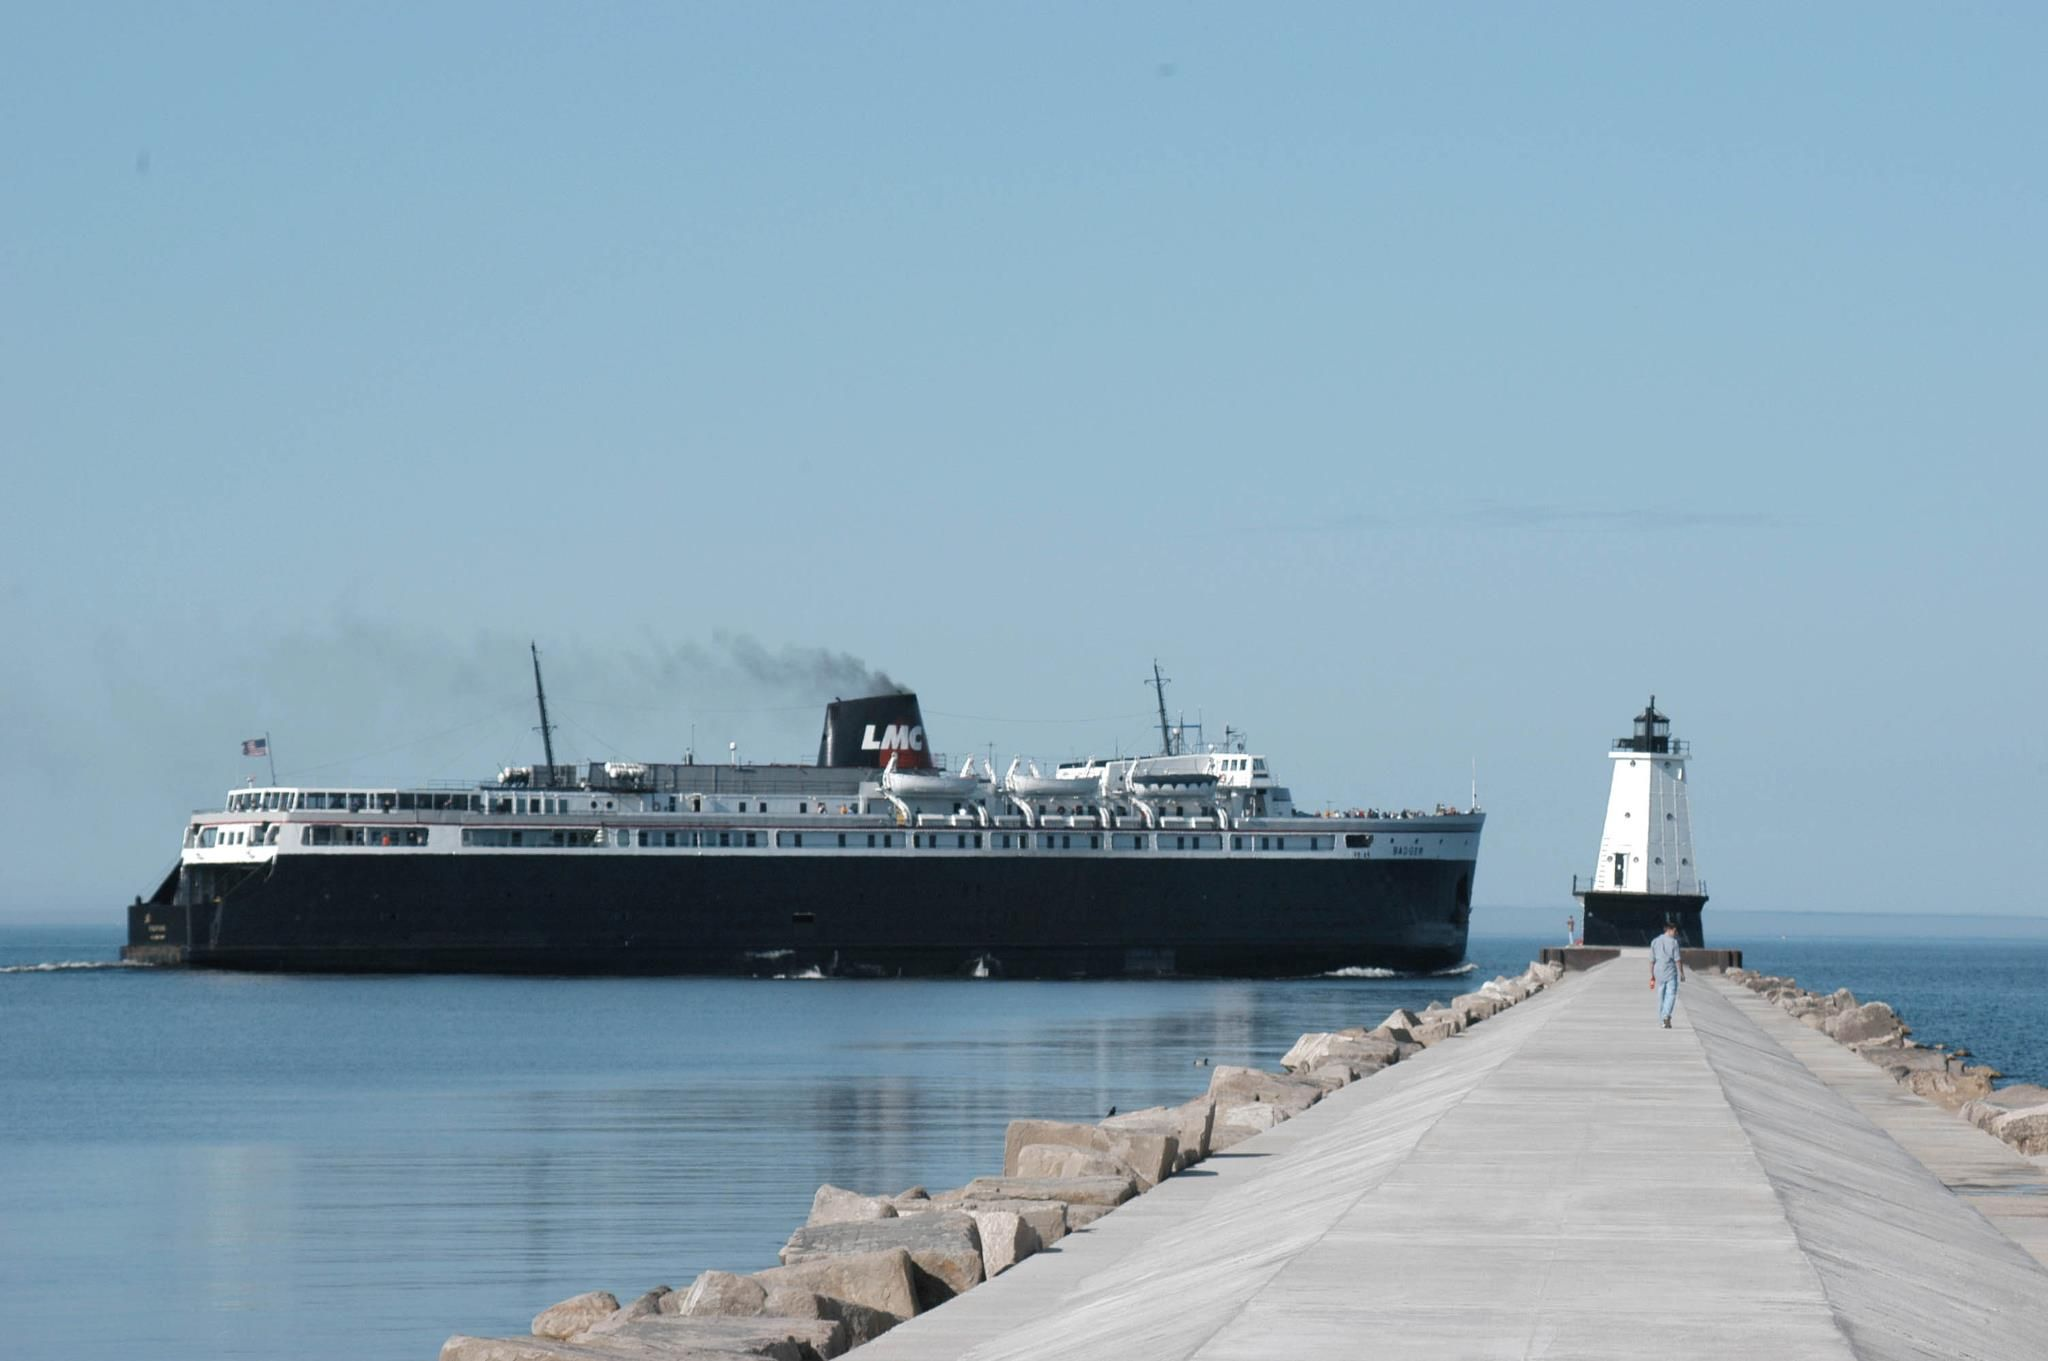 badger leaving ludington boats of the great lakes pinterest lakes rh pinterest com